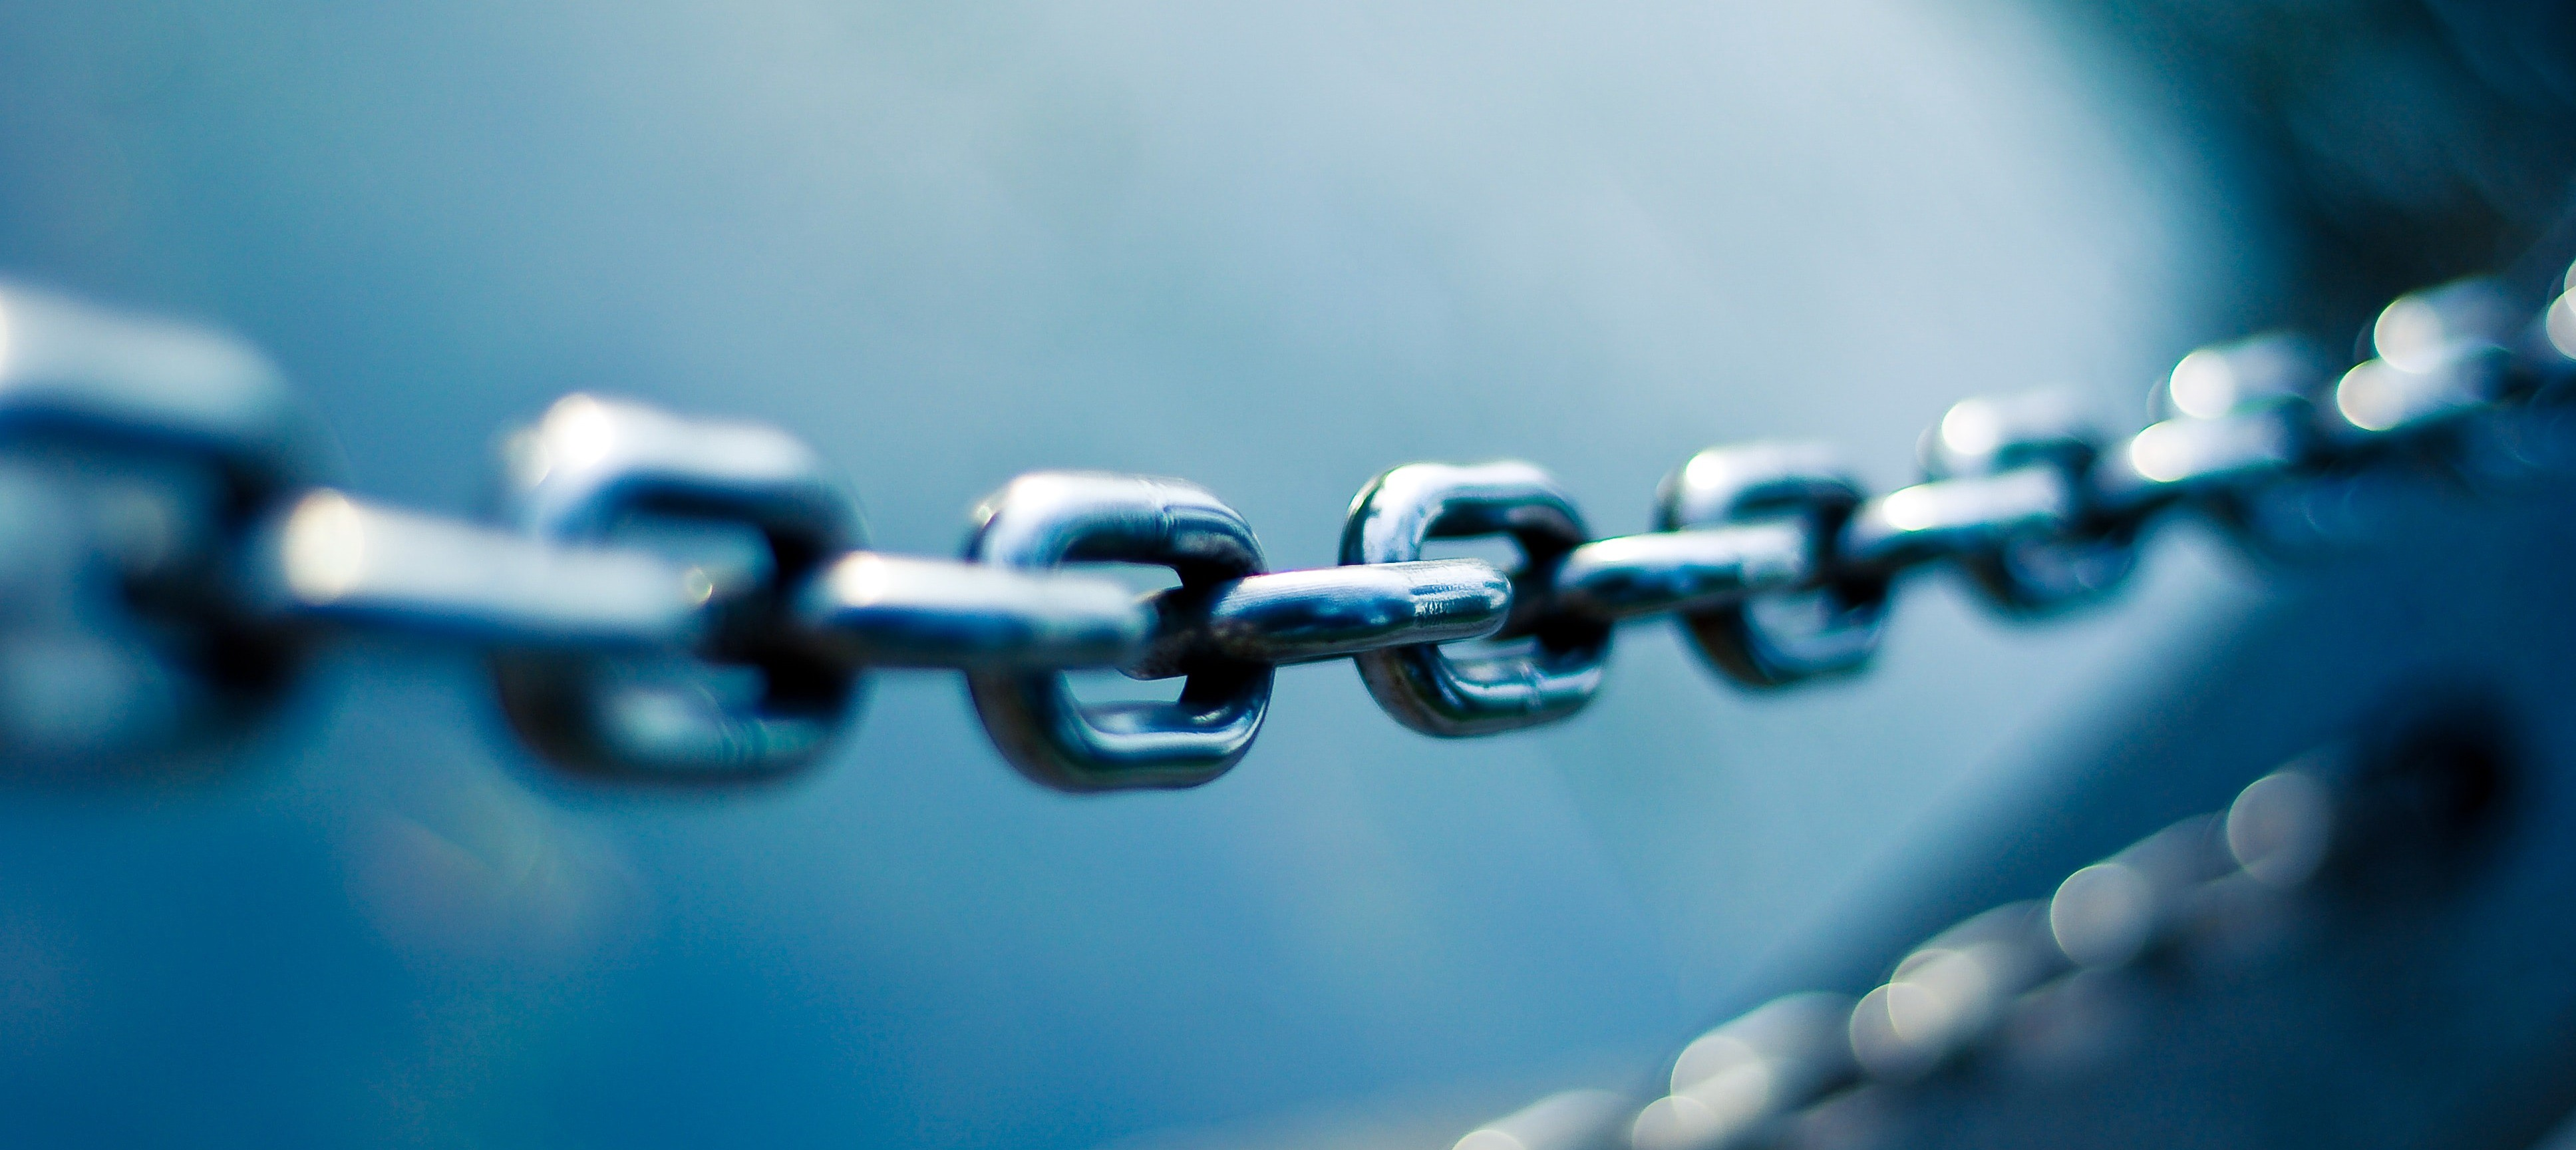 Photograph of a metal chain